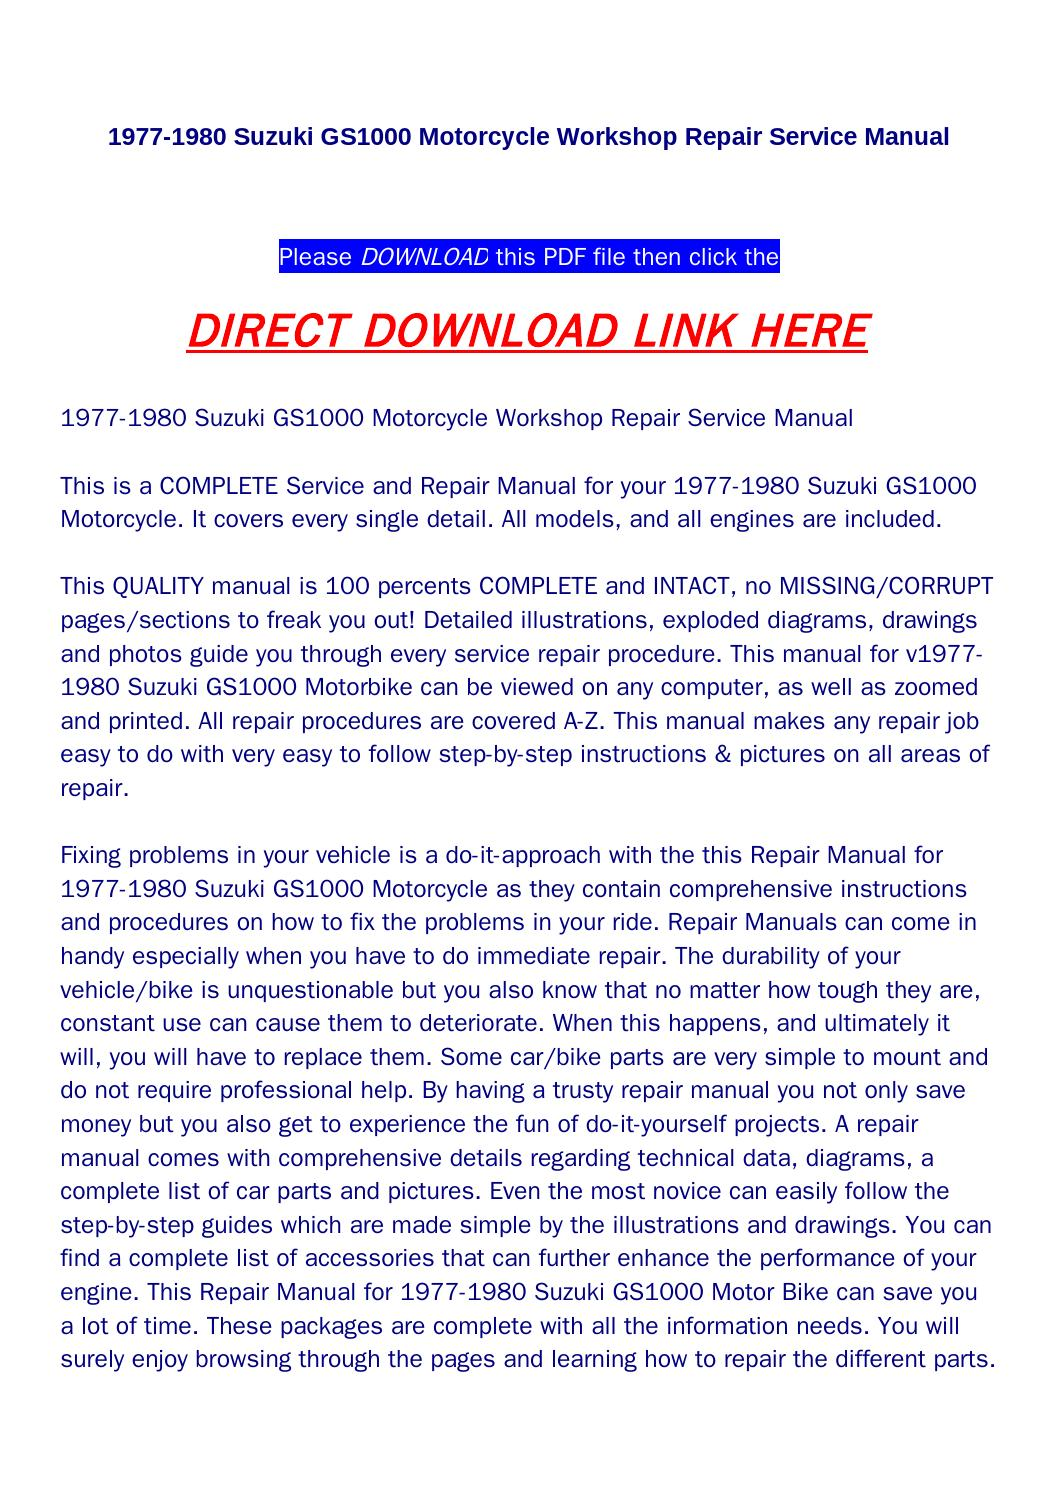 1977 1980 suzuki gs1000 motorcycle workshop repair service manual by fiee -  issuu